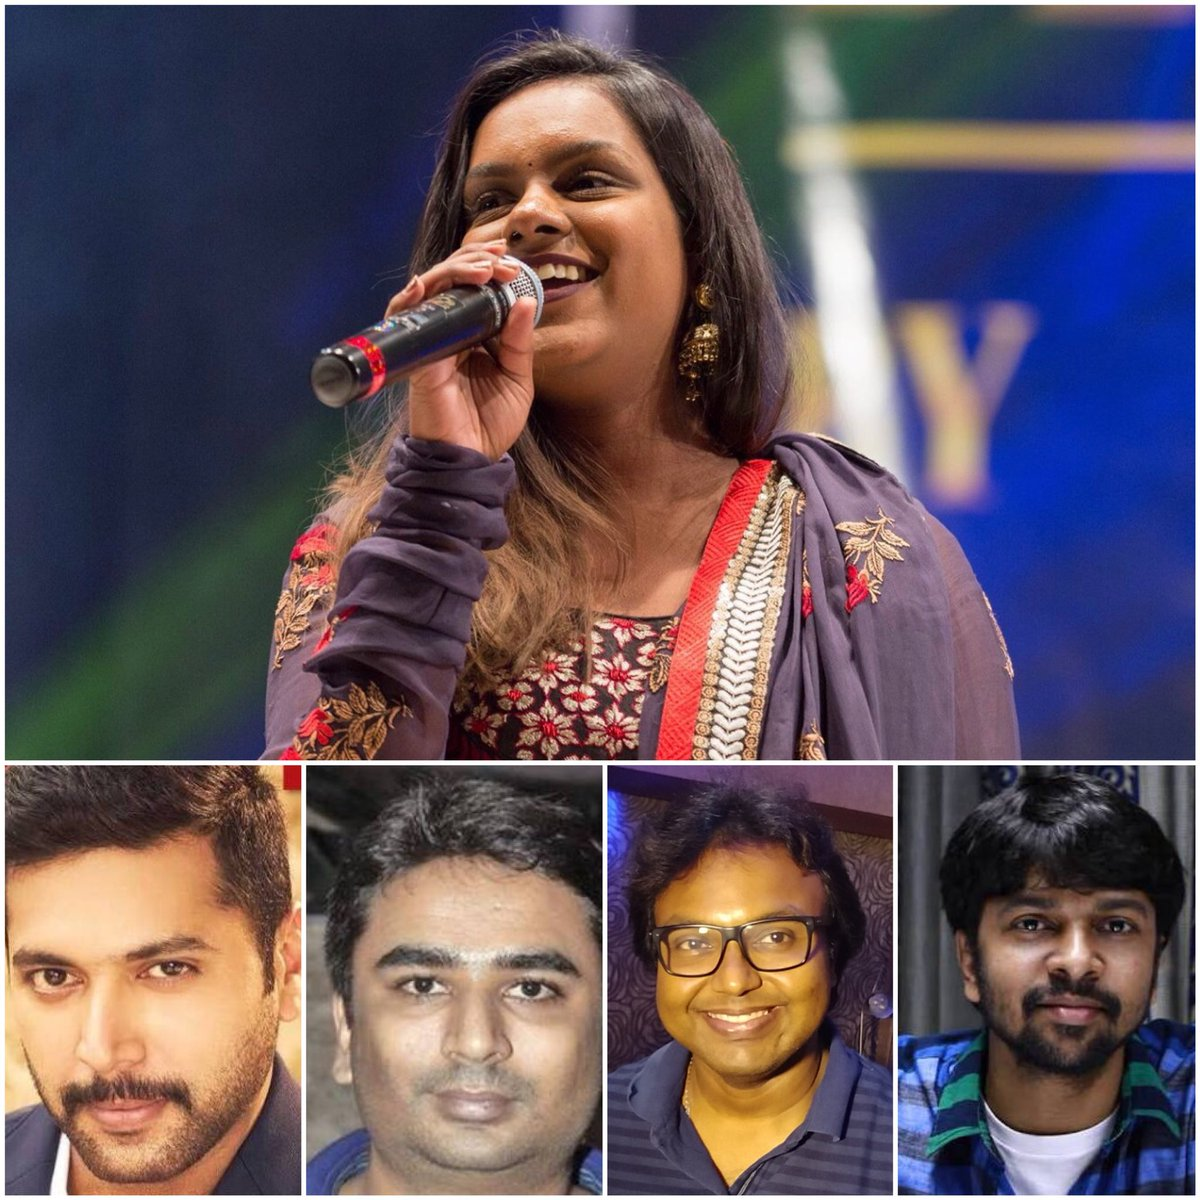 introducing another TamilEelam singing talent #MirthulaSivanantharajah From Switzerland in #TikTikTik !! She will be Reprising SidSriram's Track in the album!Touching lyrics by @madhankarky Million thanks to @ShaktiRajan n @JabaksMovies for the freedom! Wishing her all the best!